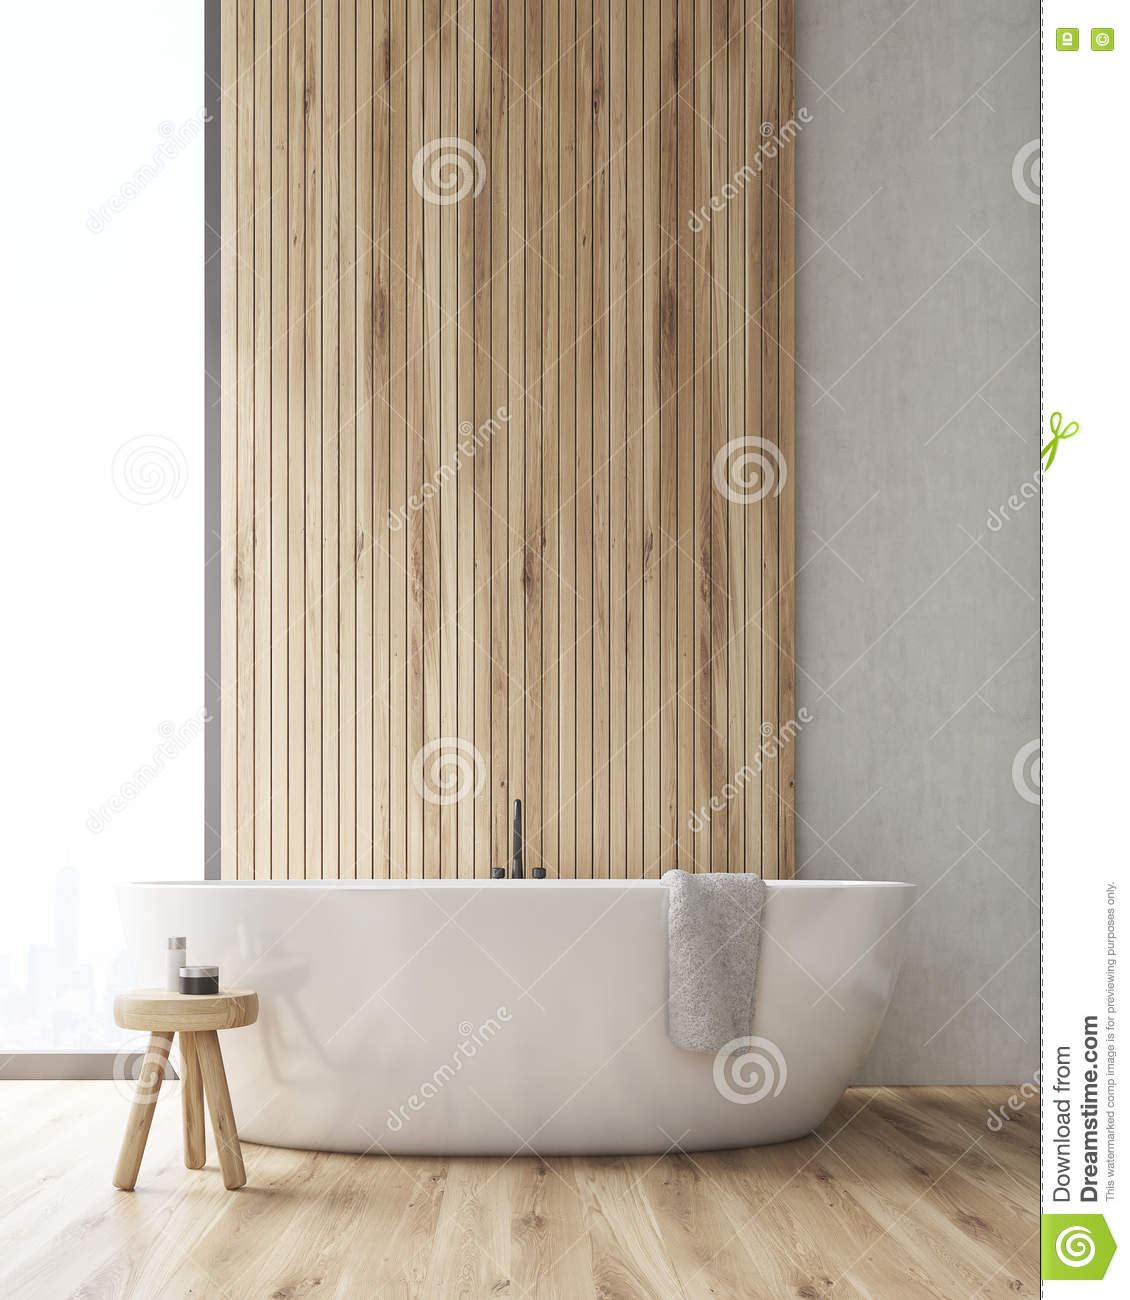 Front View Of A Bathroom With A Tub And A Wooden Wall Stock ...